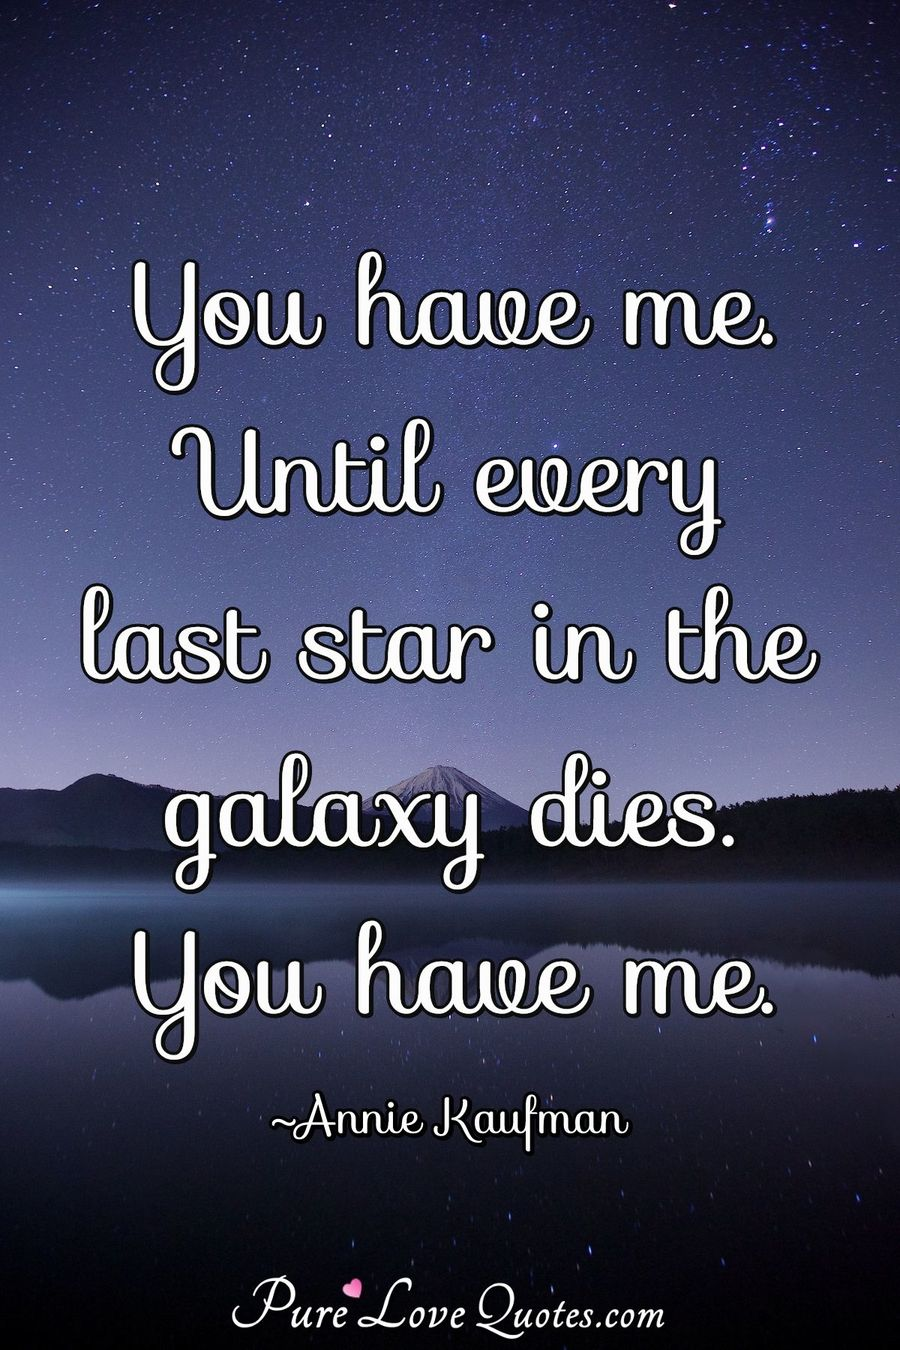 You have me. Until every last star in the galaxy dies. You have me. - Annie Kaufman